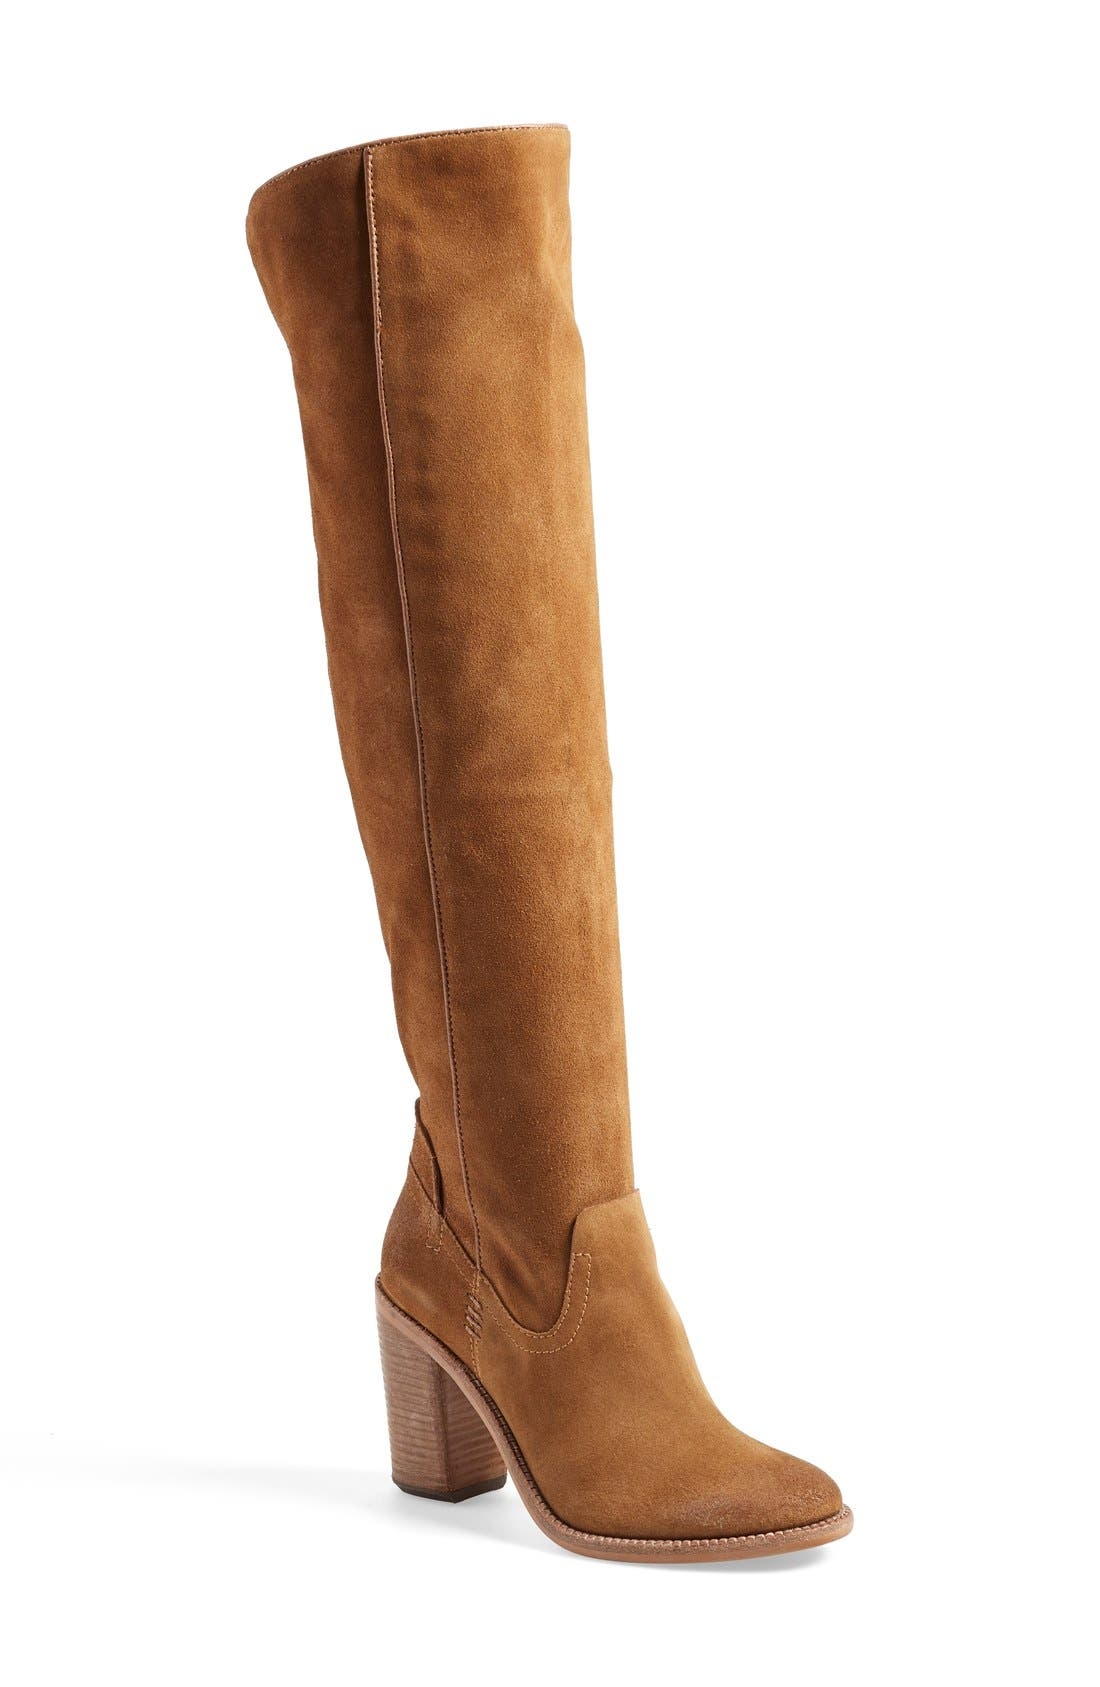 Main Image - Dolce Vita 'Ohanna' Over the Knee Boot (Women) (Nordstrom Exclusive)